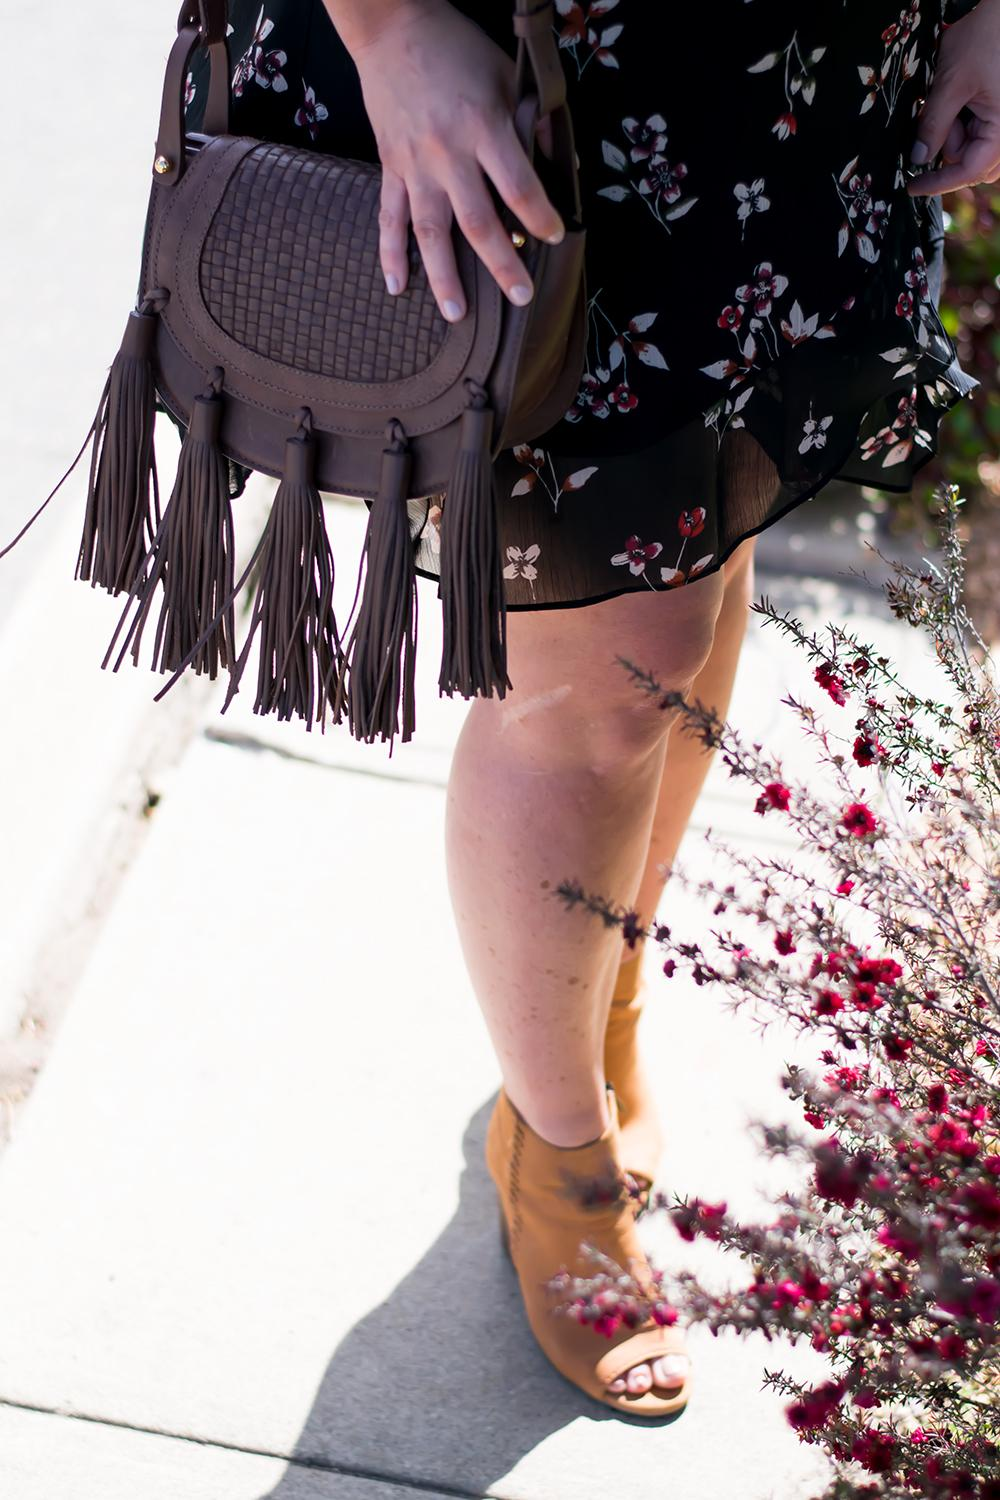 Festival-Style-Outfits-2017-BCBG-Max-Azria-Fringe-Crossbody-Barefoot-in-LA-Fashion-Blog-Style-Ideas_0953